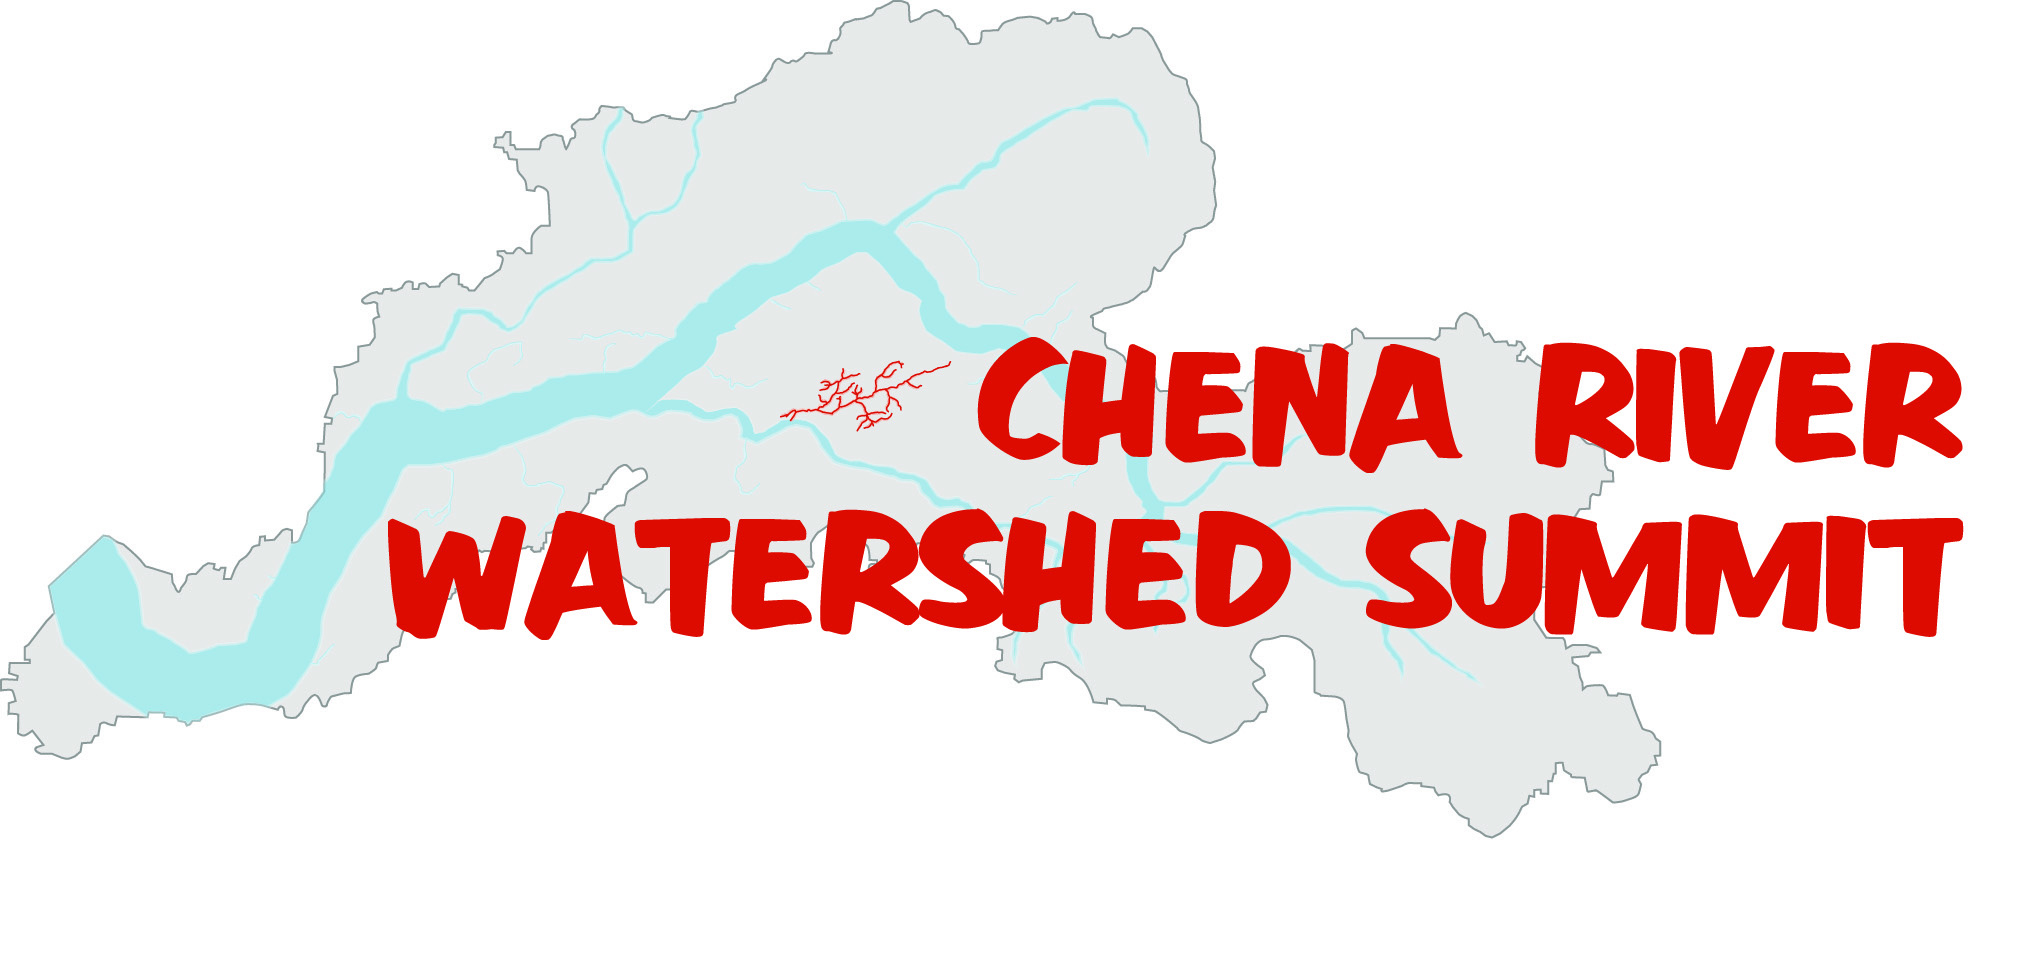 The summit is an opportunity to learn about the diversity of the Chena watershed, make important decisions about watershed protection, and network with the diverse groups who are interested in the Chena River.